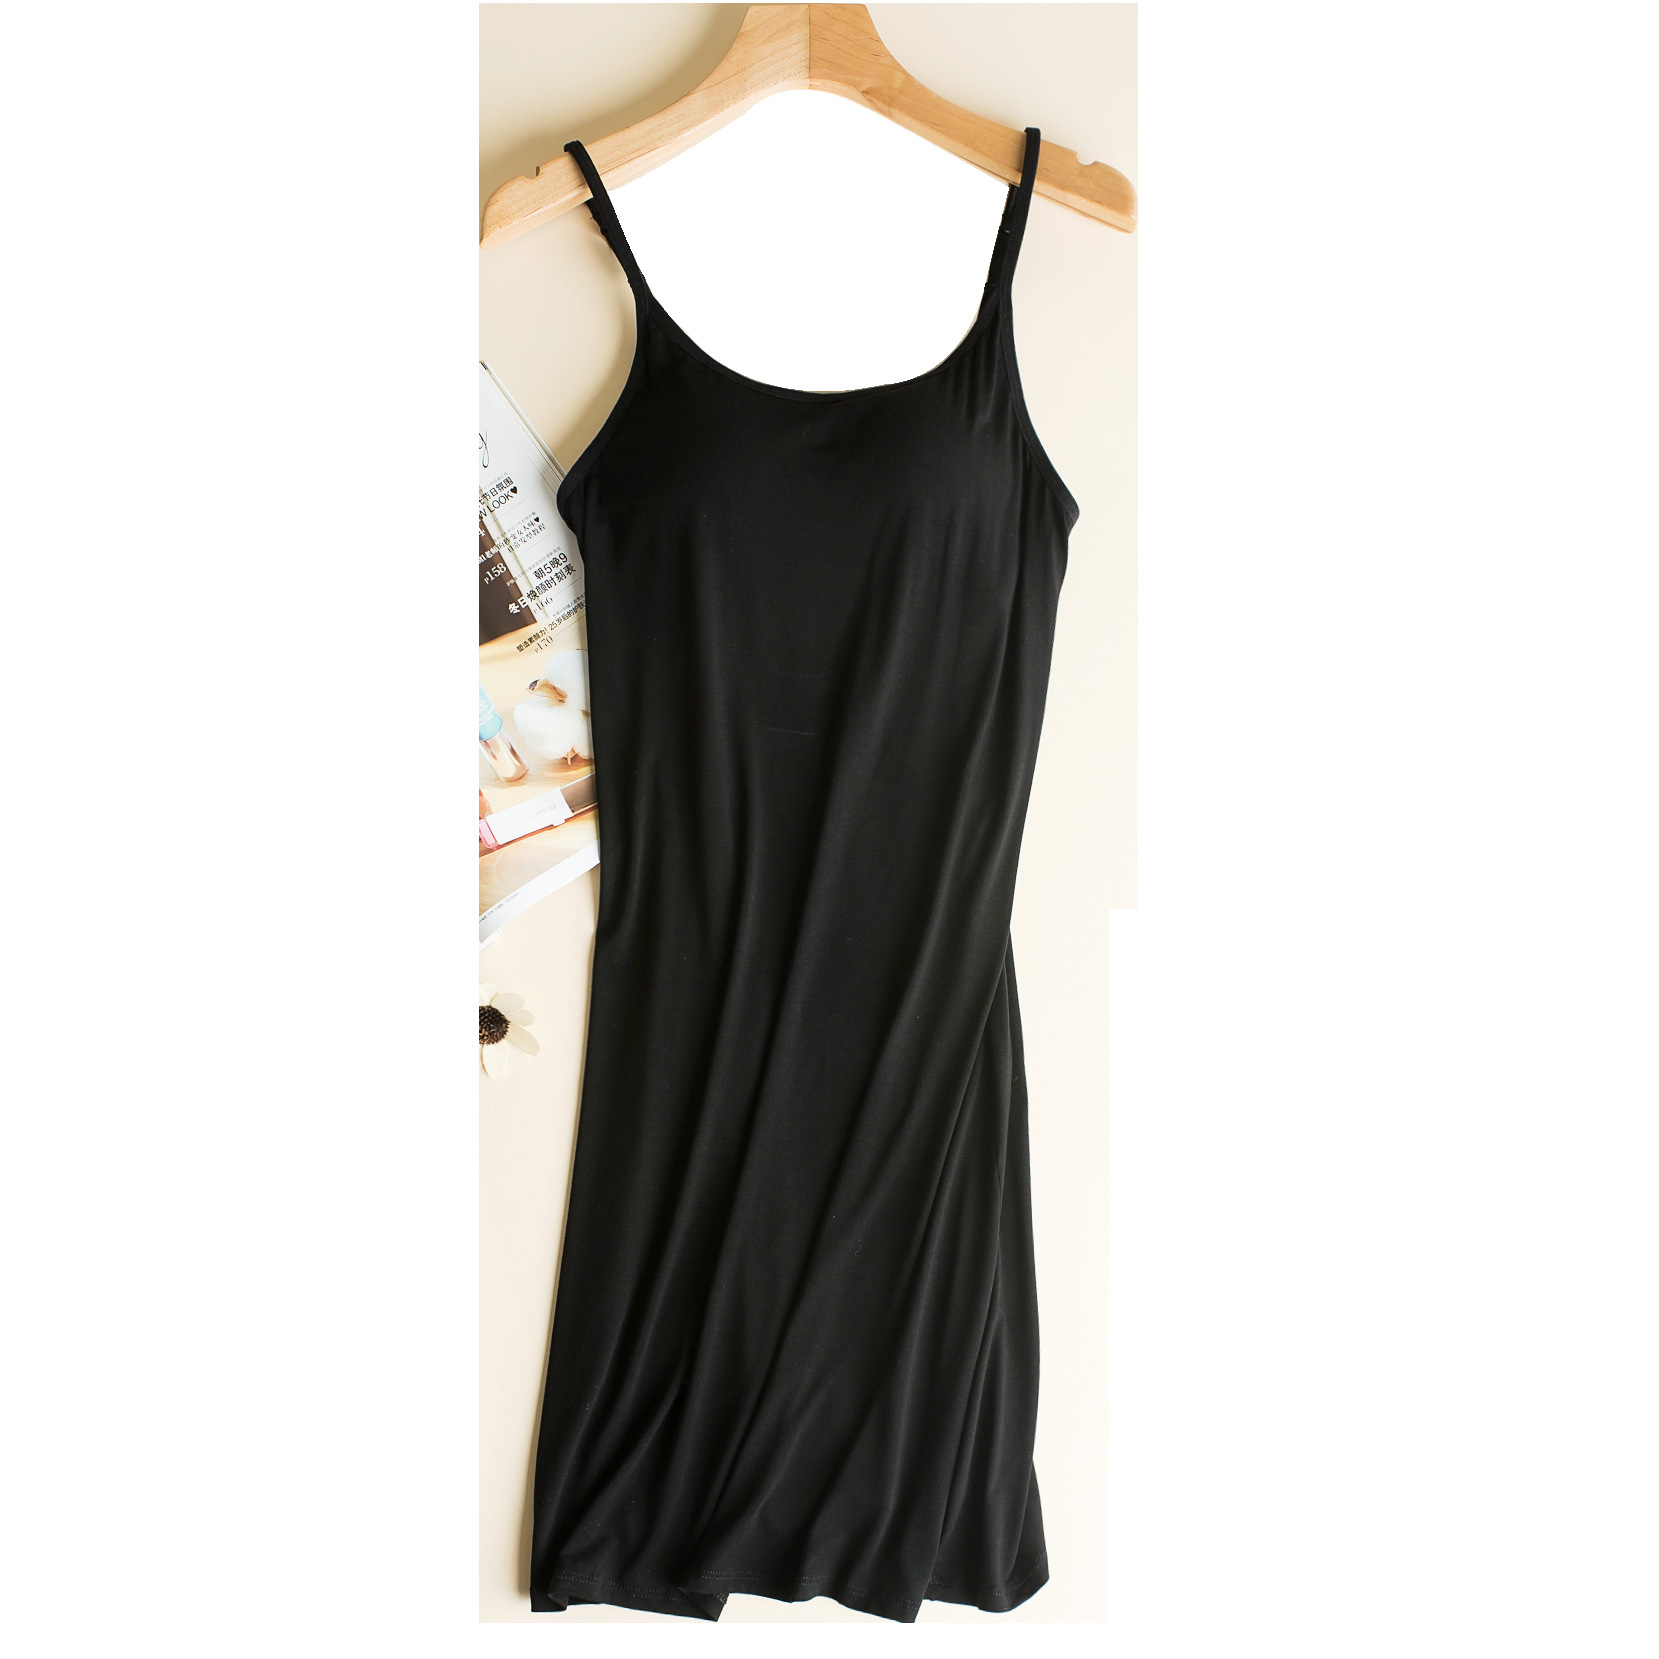 White Round Neck Camisole Back Household Comfortable Mid-length With Chest Pad Dress Nightgown Nursing Wear Free Underwear Sprin